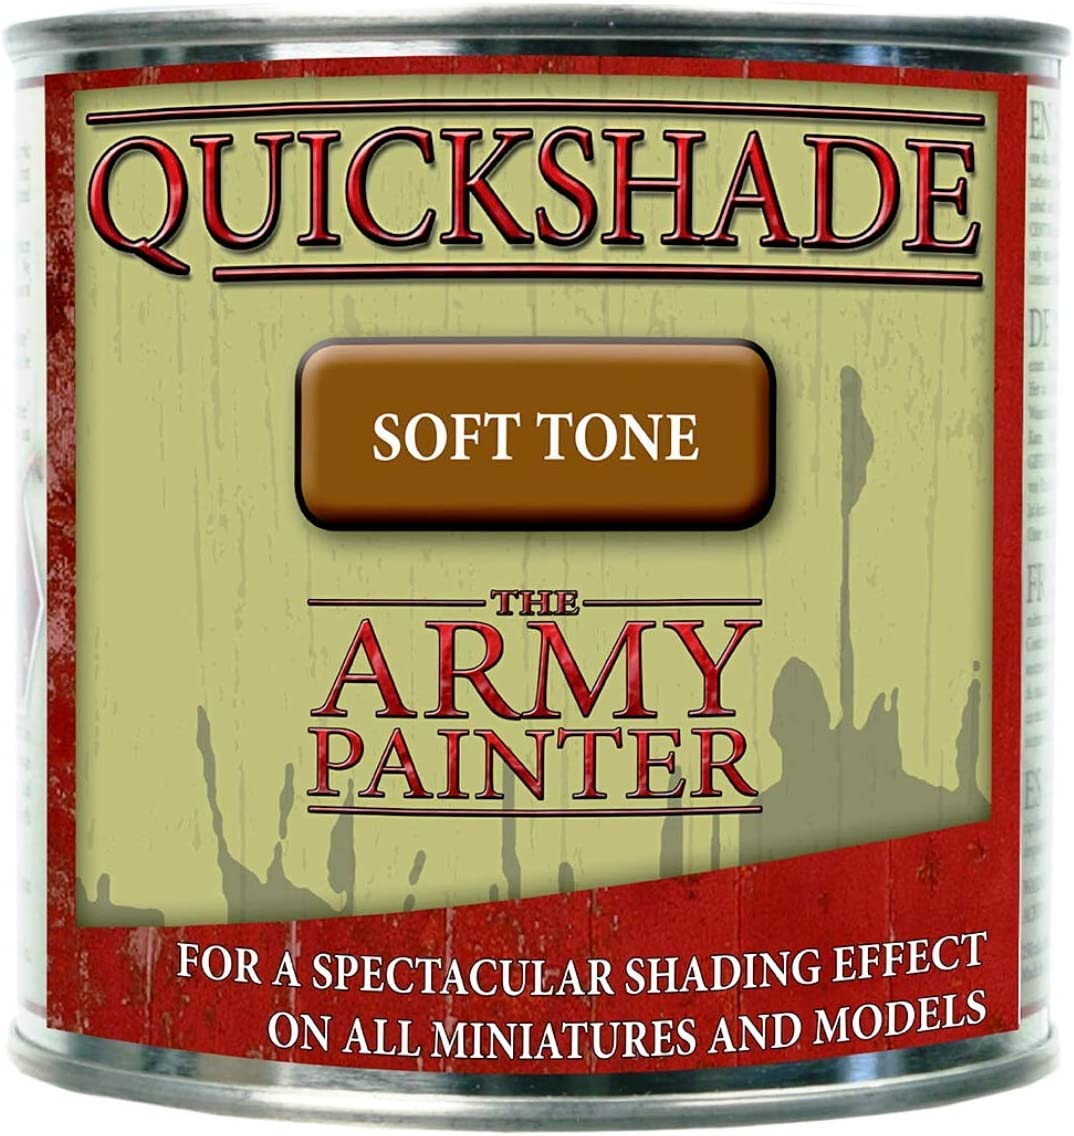 The Army Painter Quickshade sold out Rapid rise Pain for Varnish Miniature